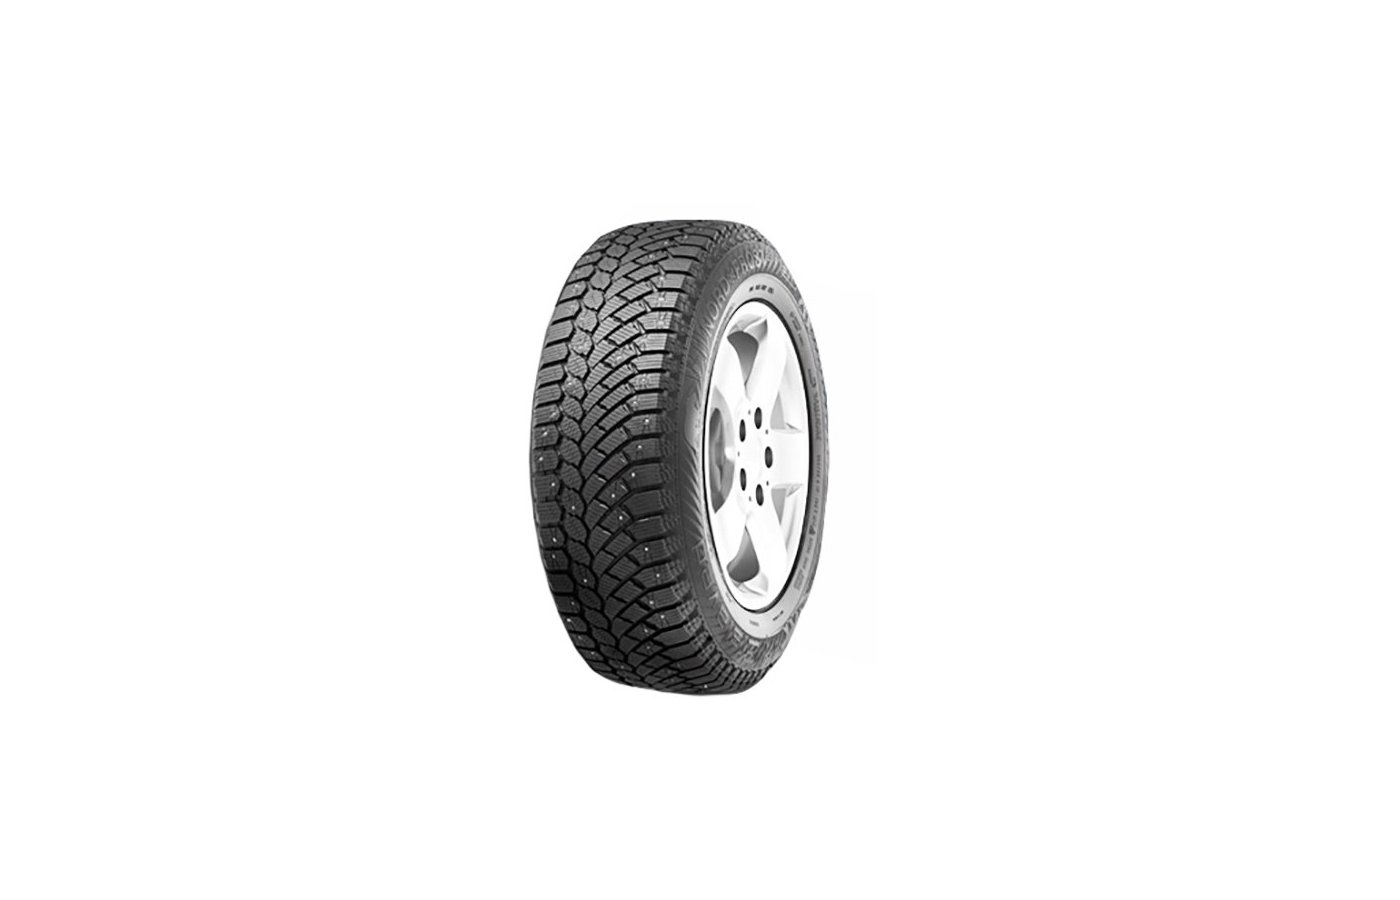 Шина Gislaved NordFrost 200 215/60 R16 TL 99T XL шип